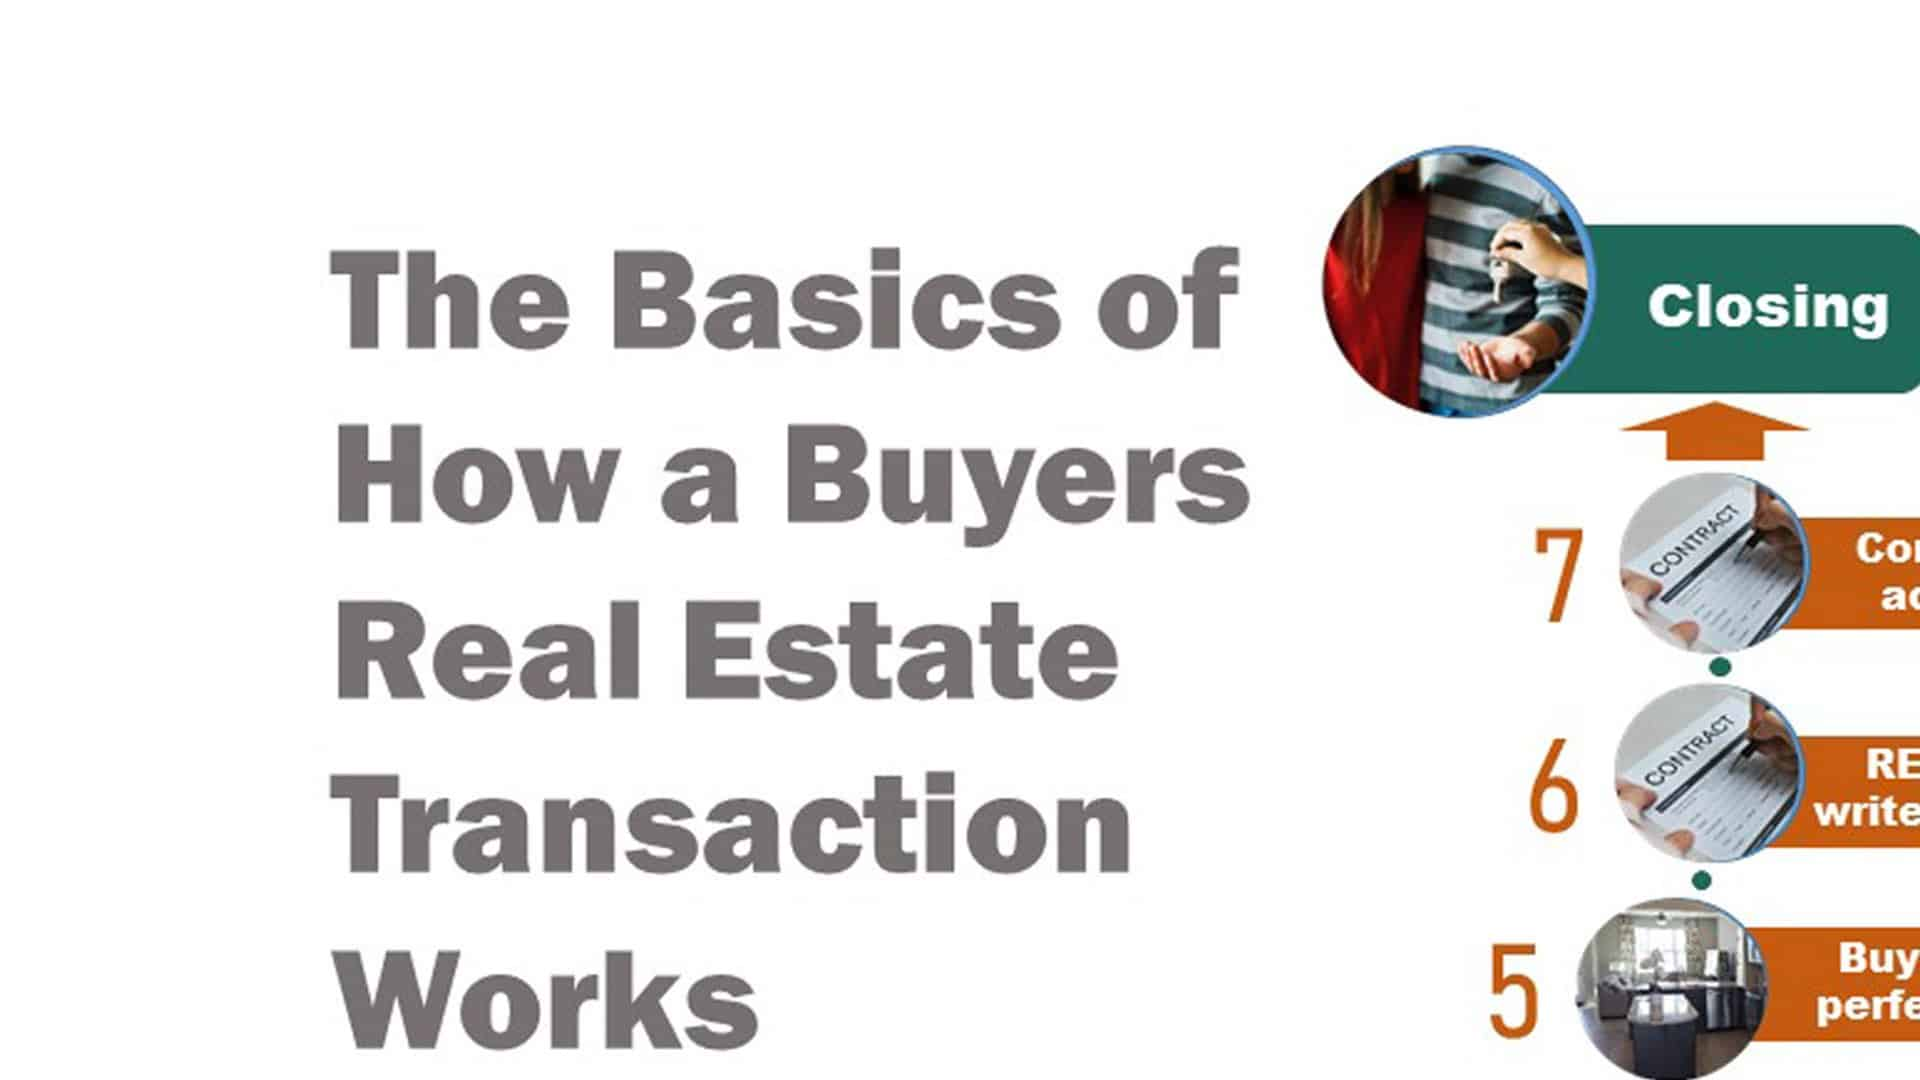 Basics: How a Buyers Real Estate Transaction Works 7